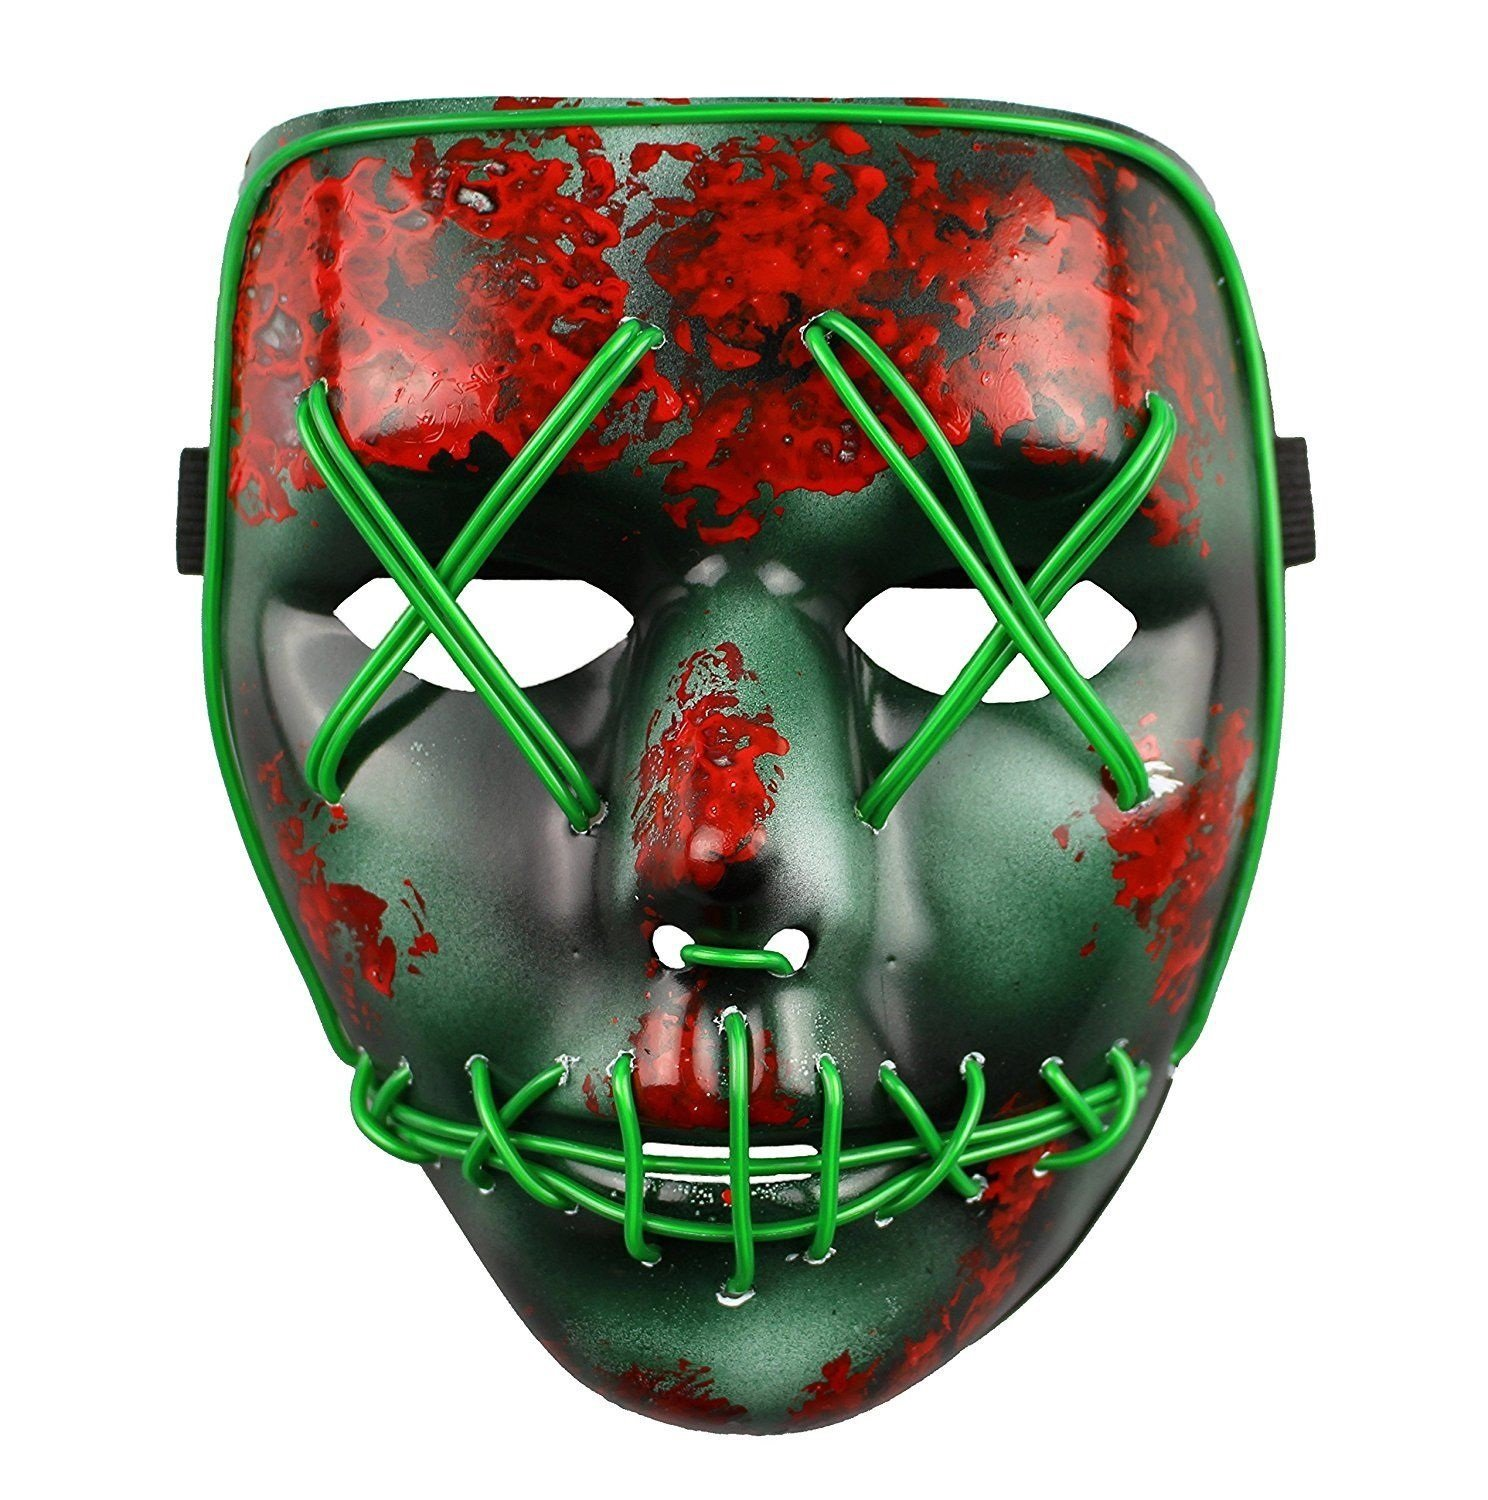 The Purge Election Year Light Up LED Halloween Mask - Universal Size by Toys And Masks